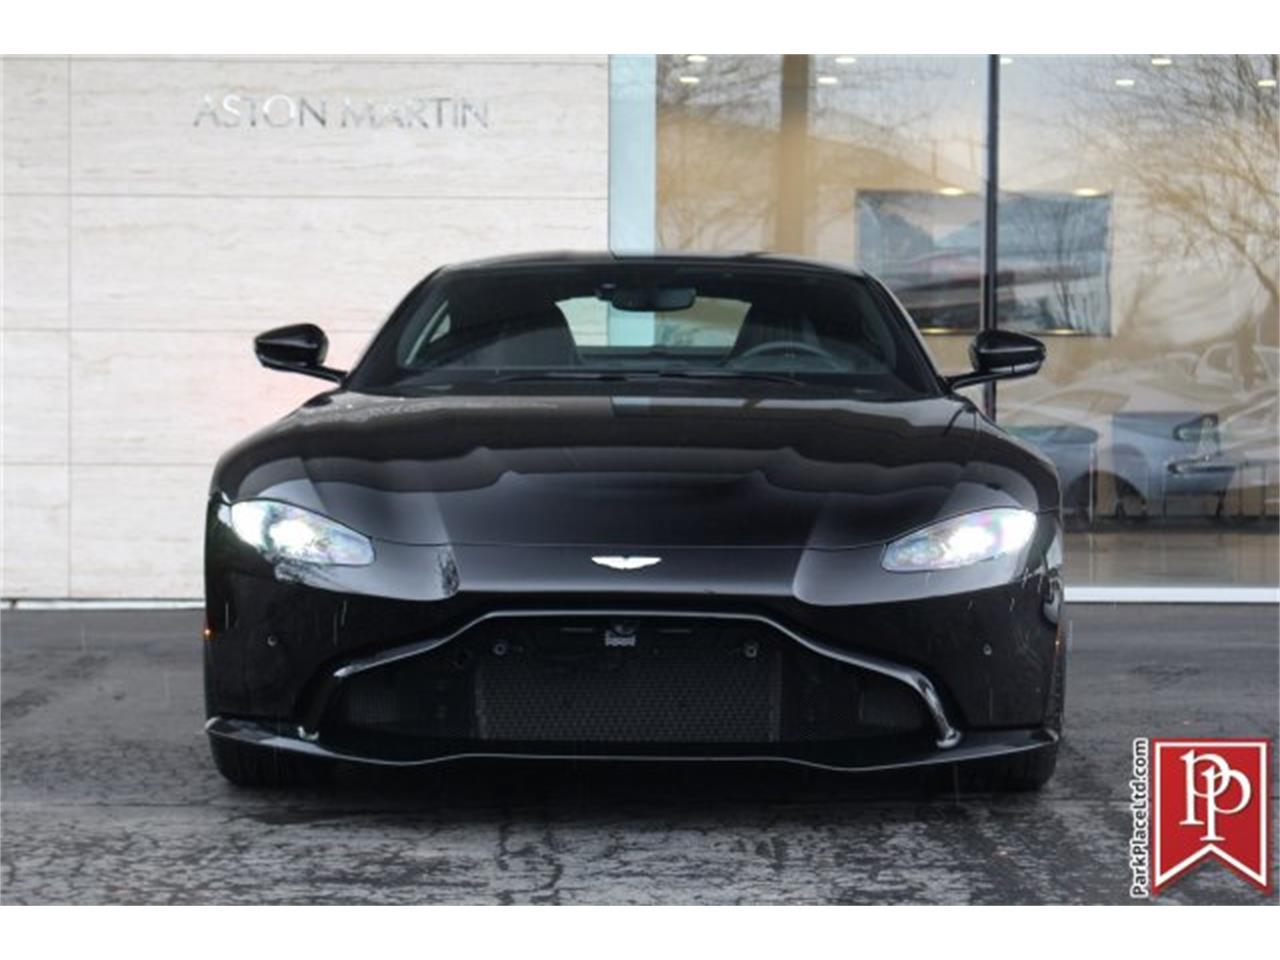 2019 Aston Martin Vantage for sale in Bellevue, WA – photo 5